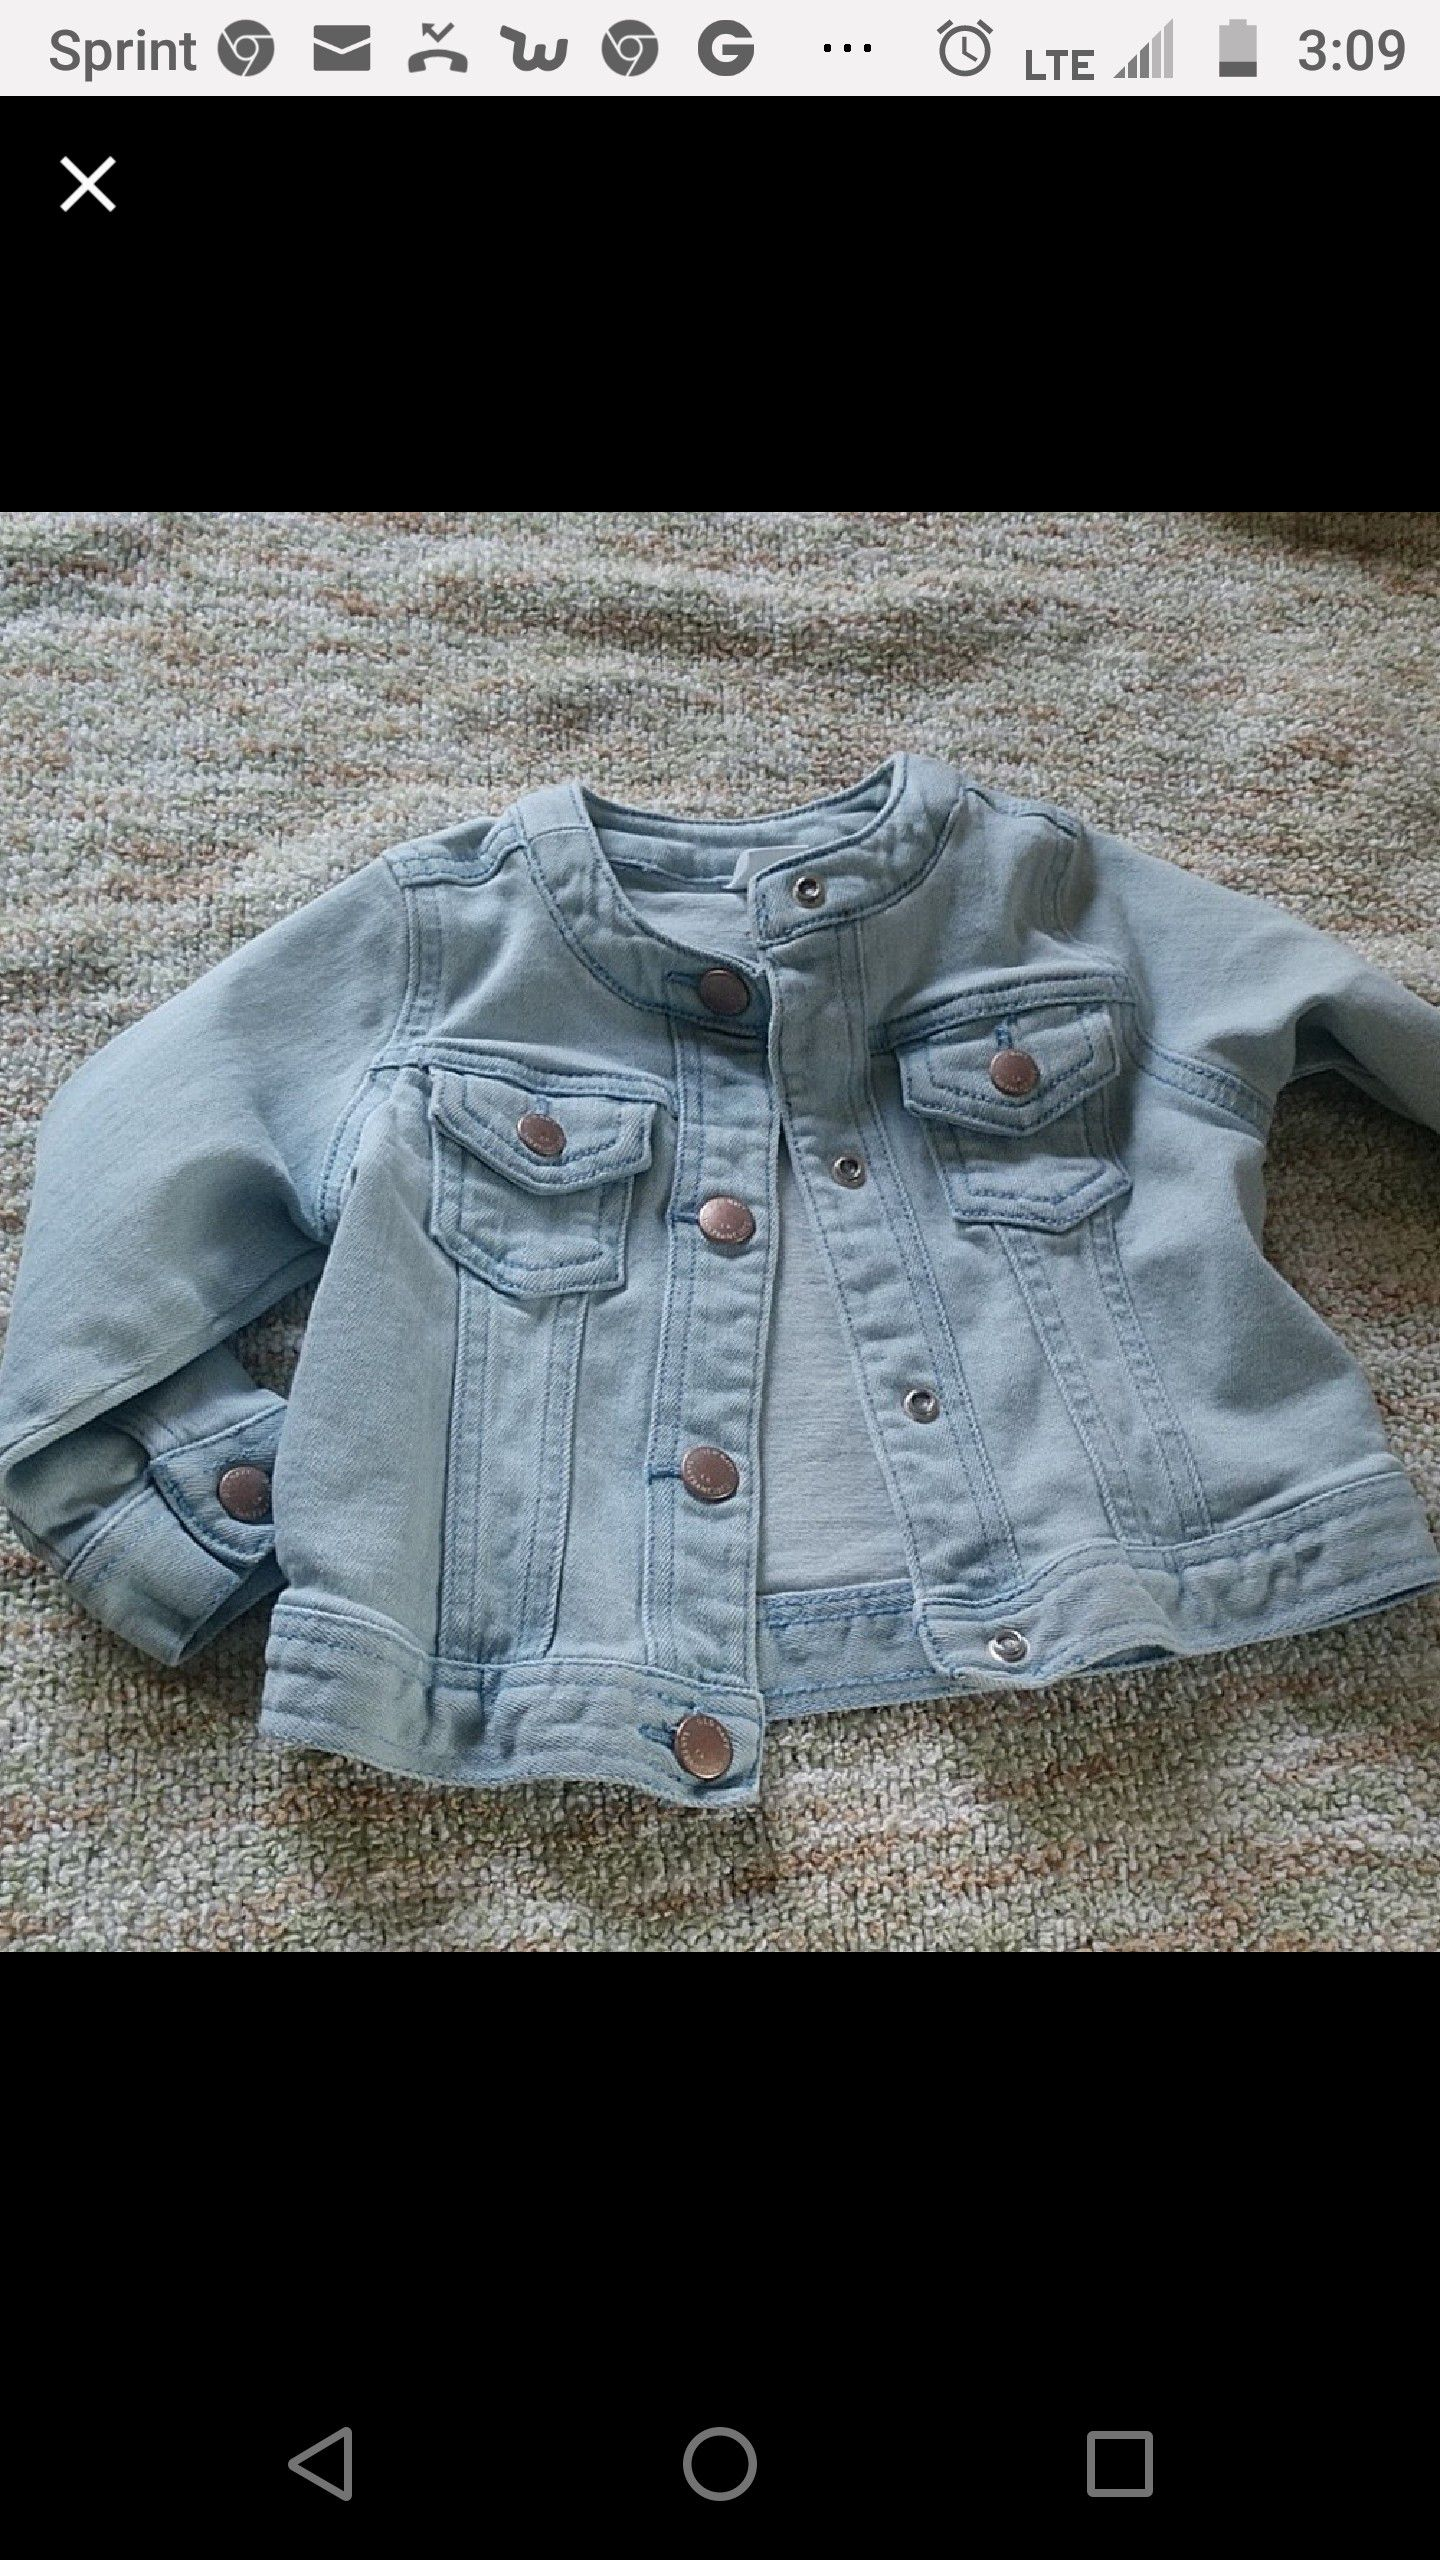 Baby jacket size 12/18 month